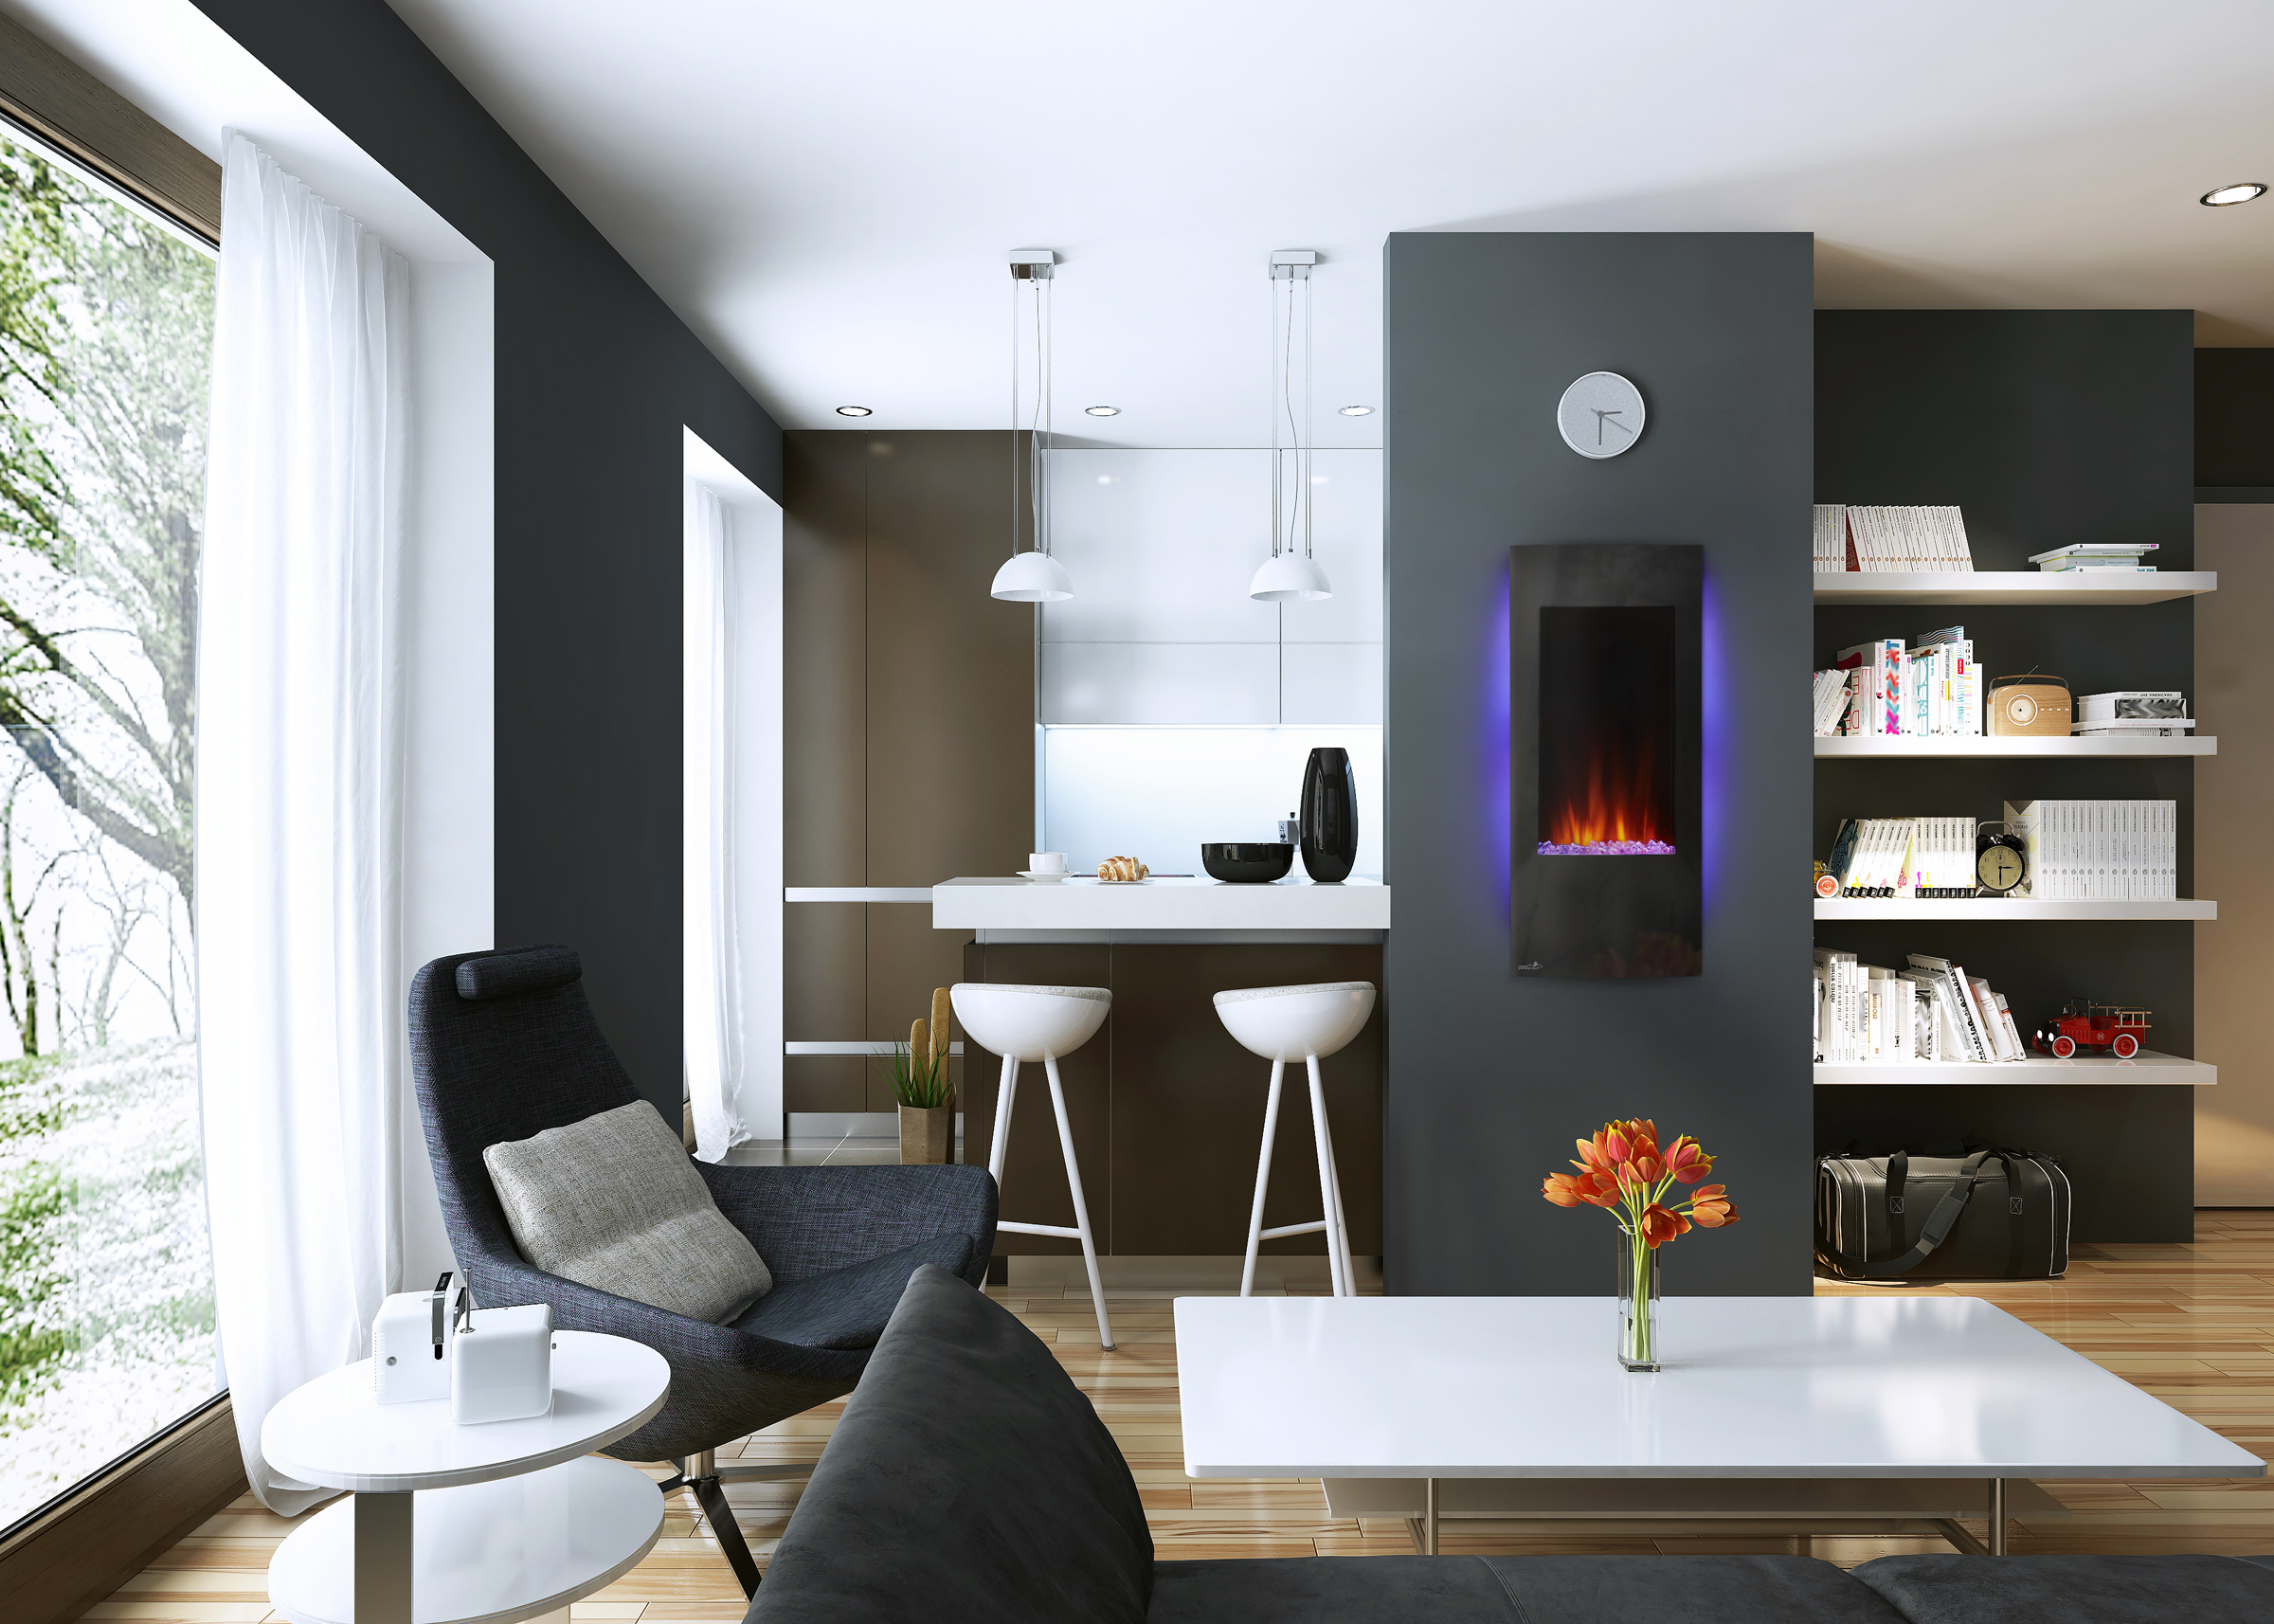 CEFV38H-room-setting-continental-fireplaces.jpg